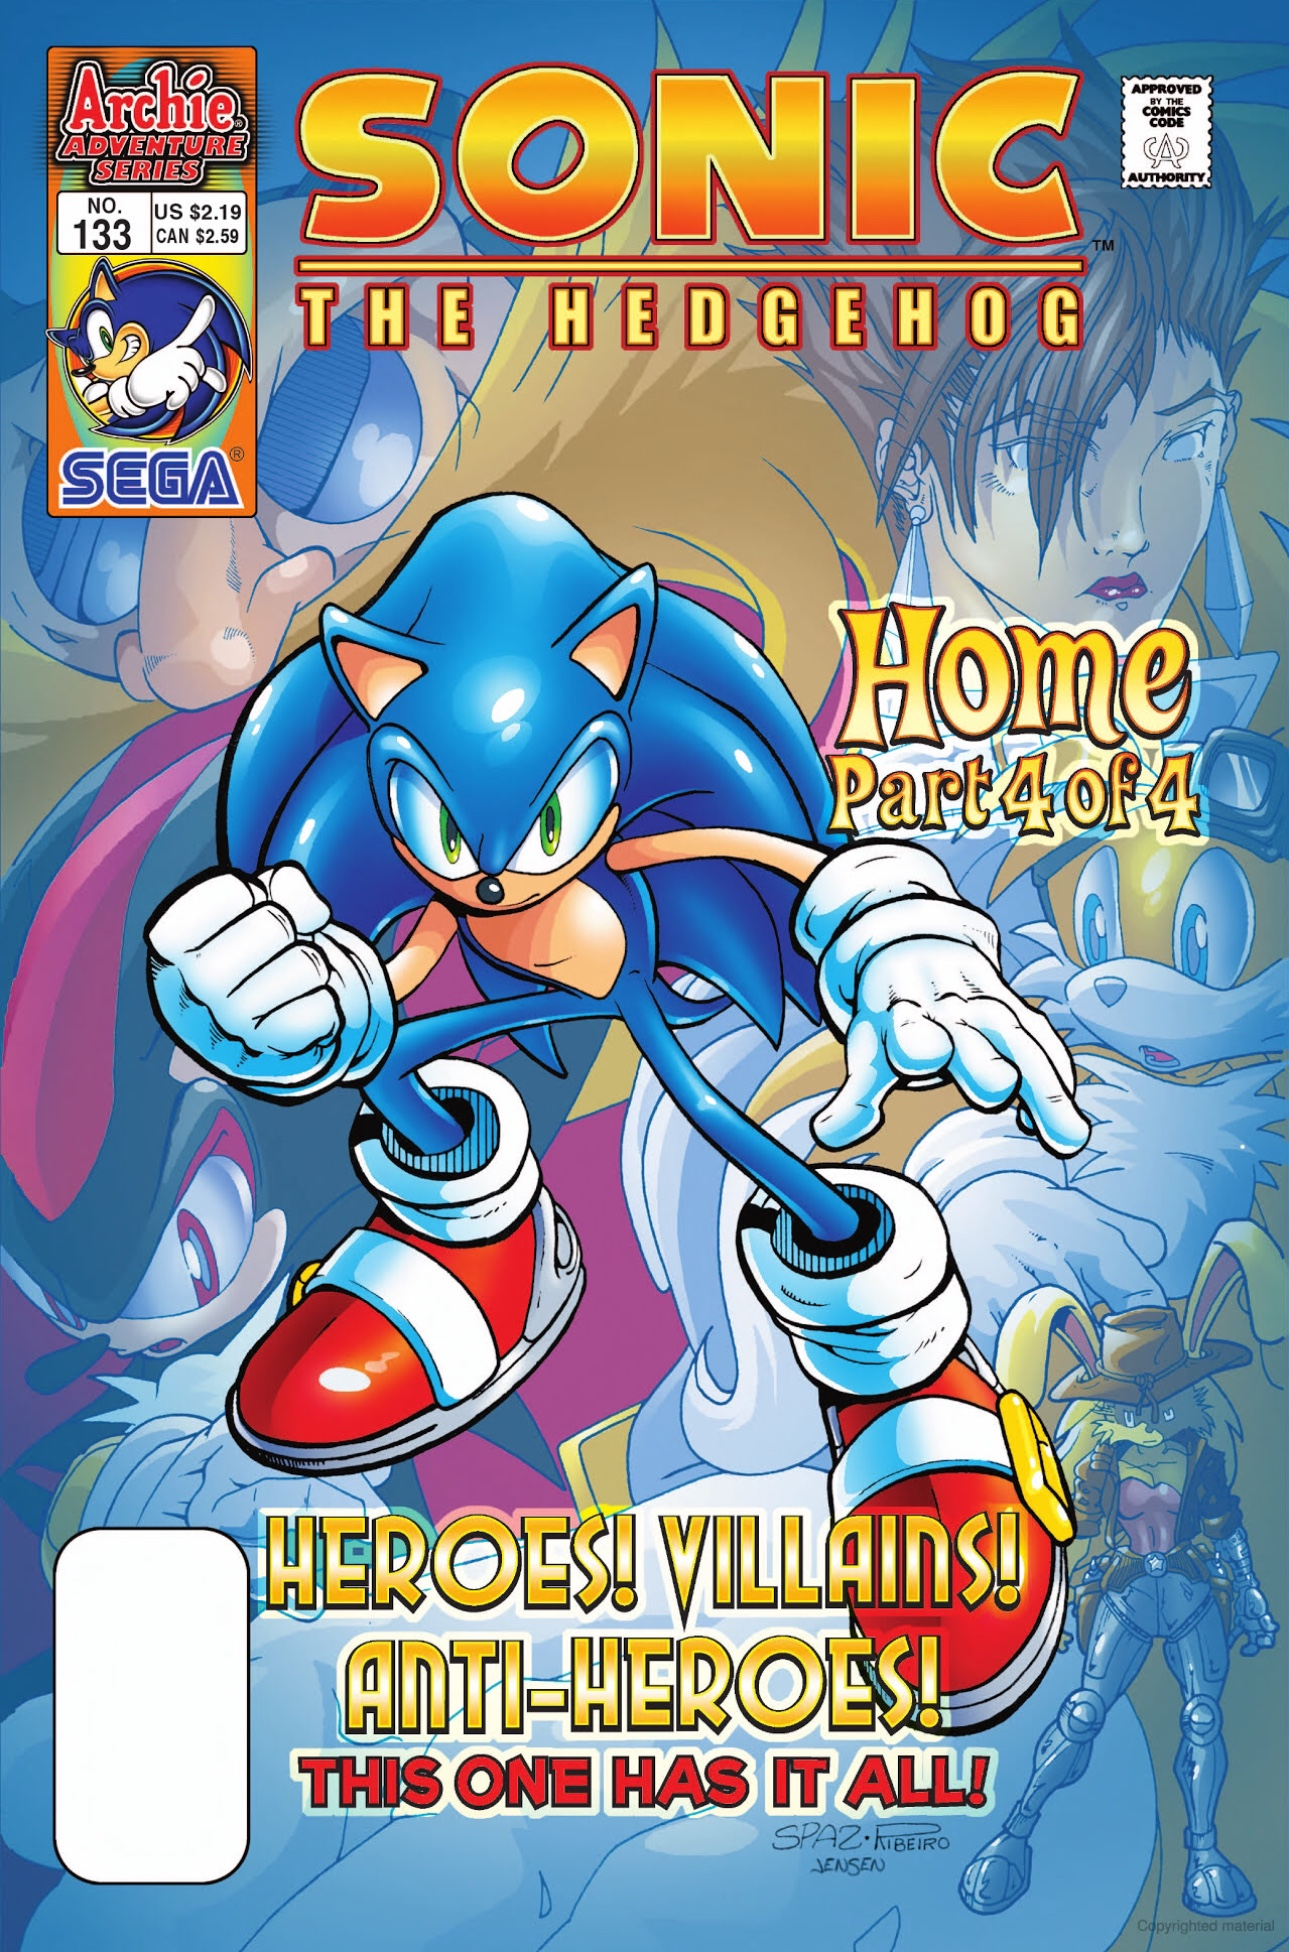 Archie Sonic the Hedgehog Issue 133